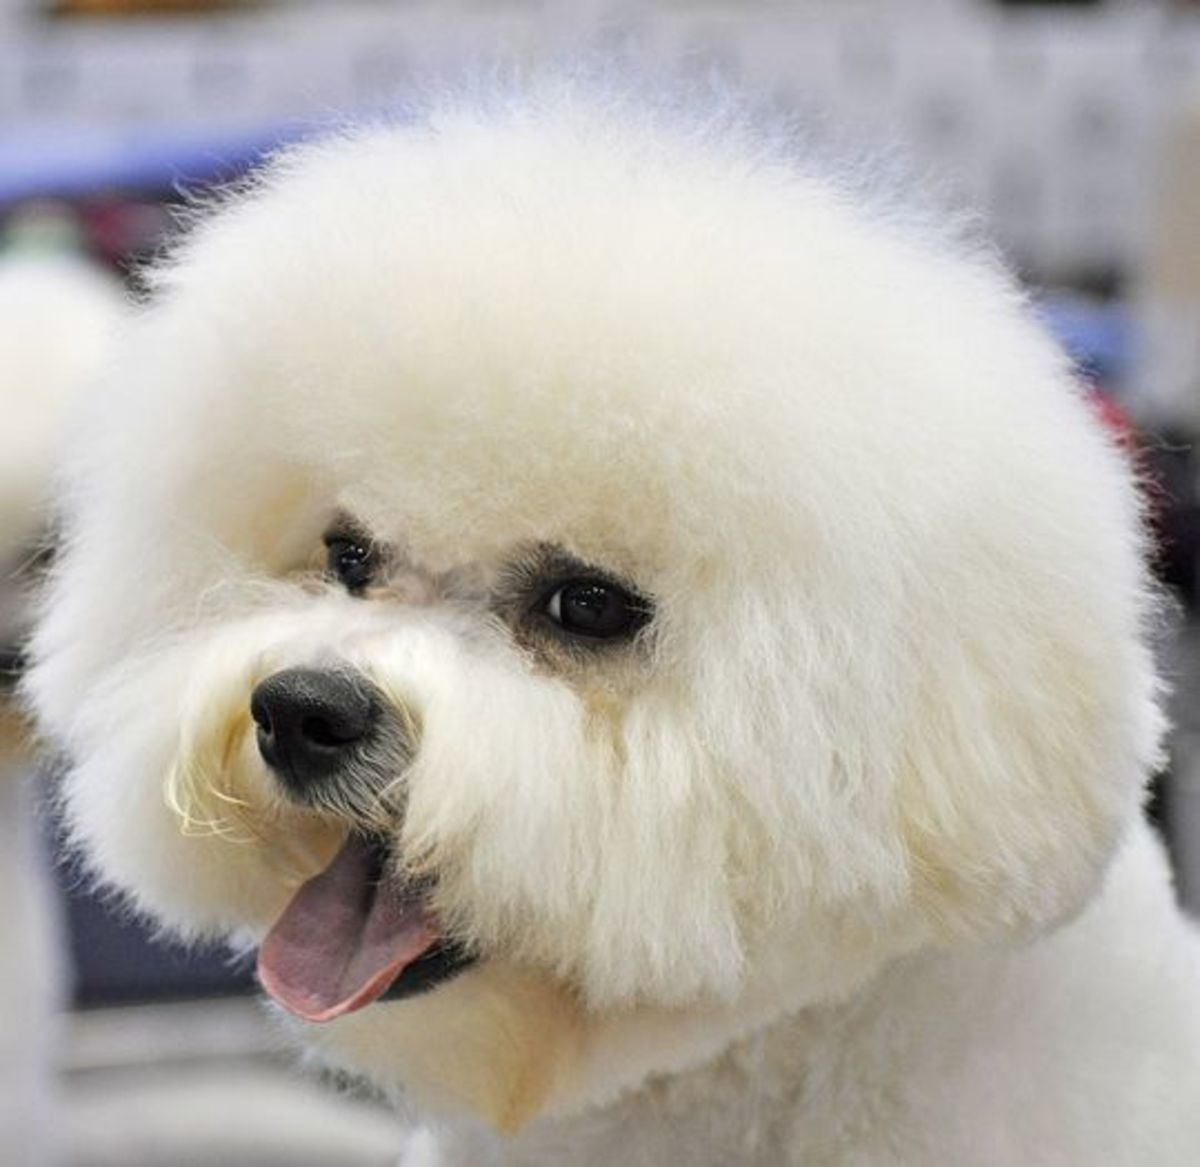 A clean and sturdy dog, the Bichon Frisé is great with kids.